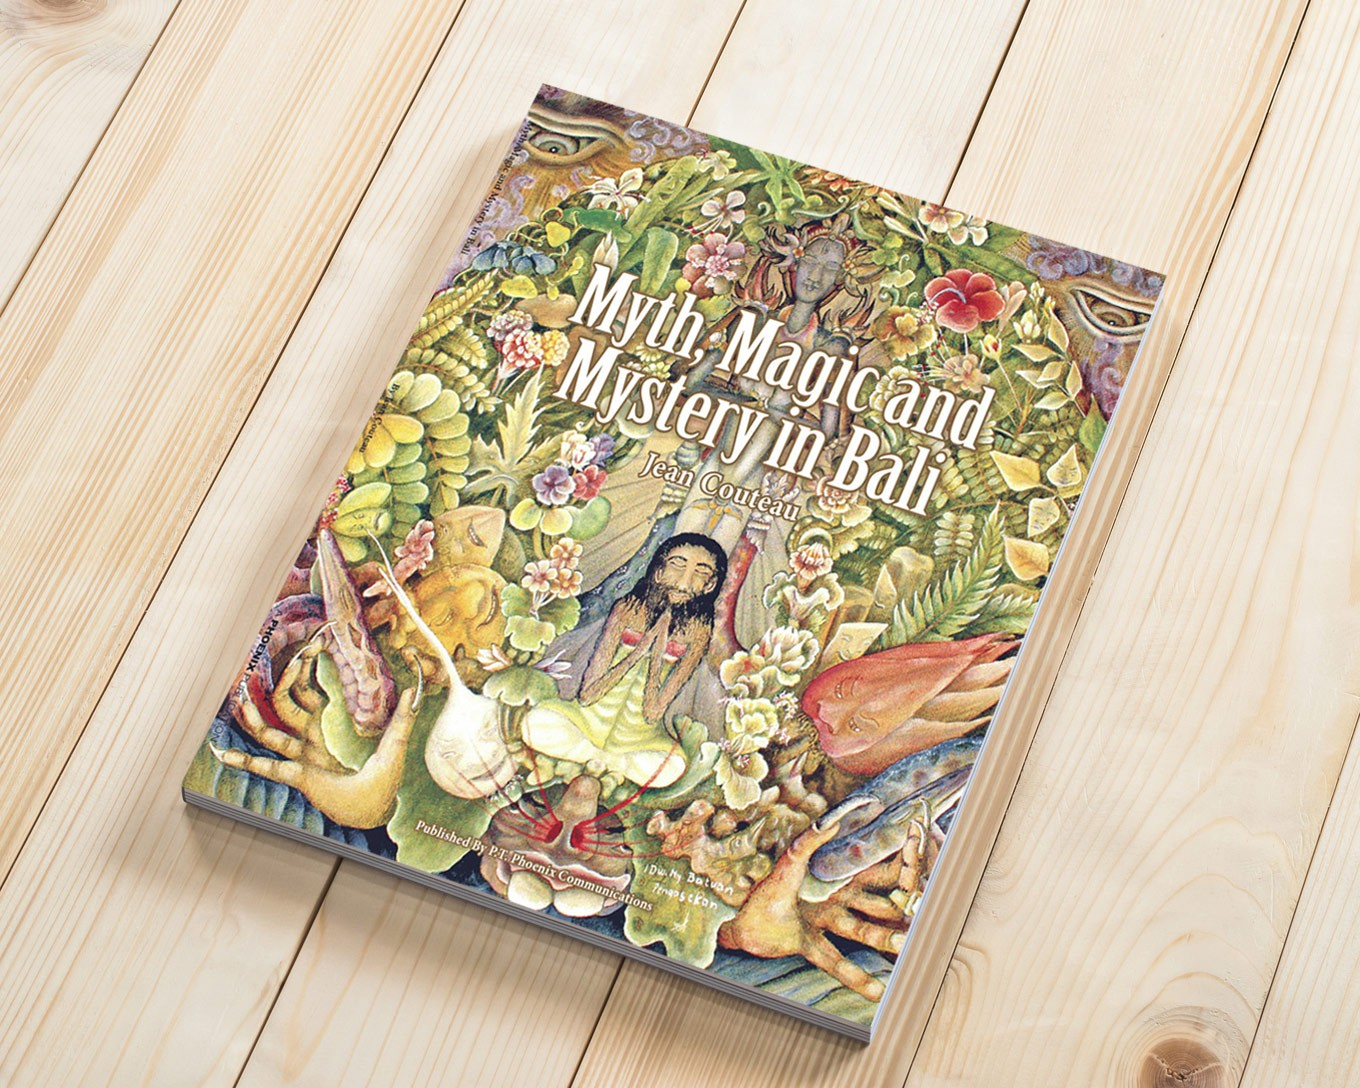 'Myth, Magic and Mystery in Bali': Rediscover Bali with Jean Couteau